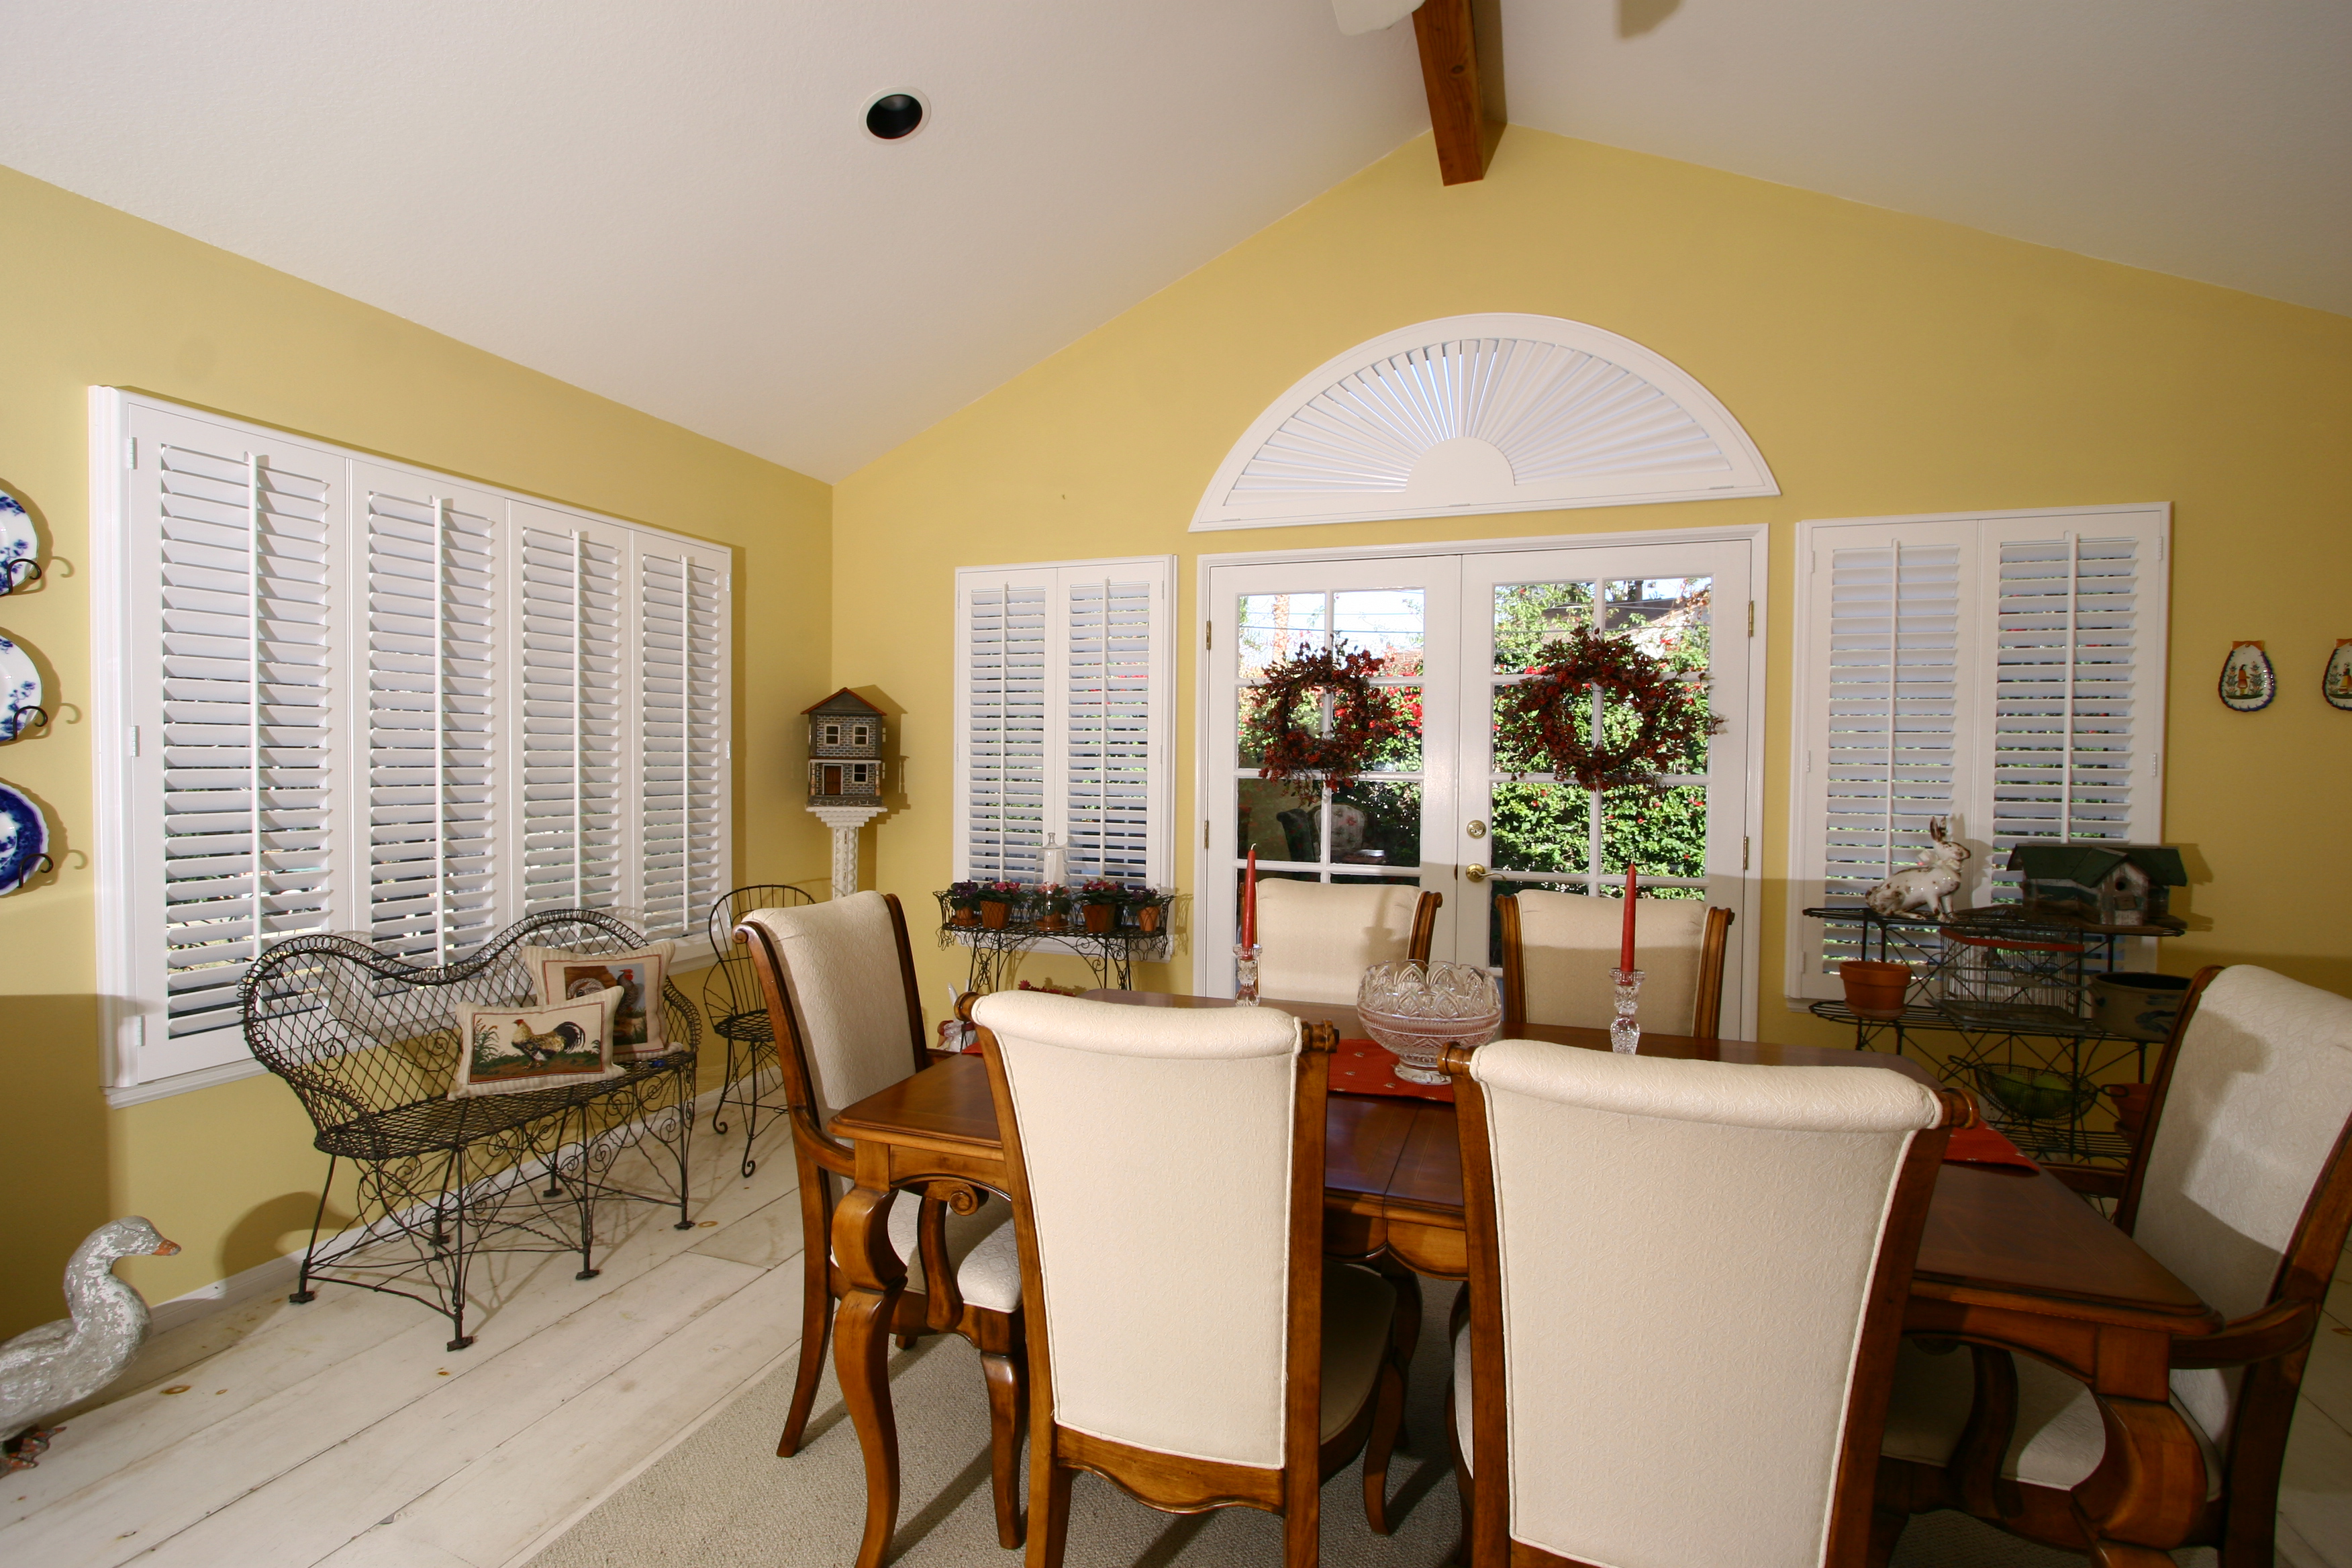 Shutters and More reviews | Shutters at 9430 De Soto Ave - Chatsworth CA